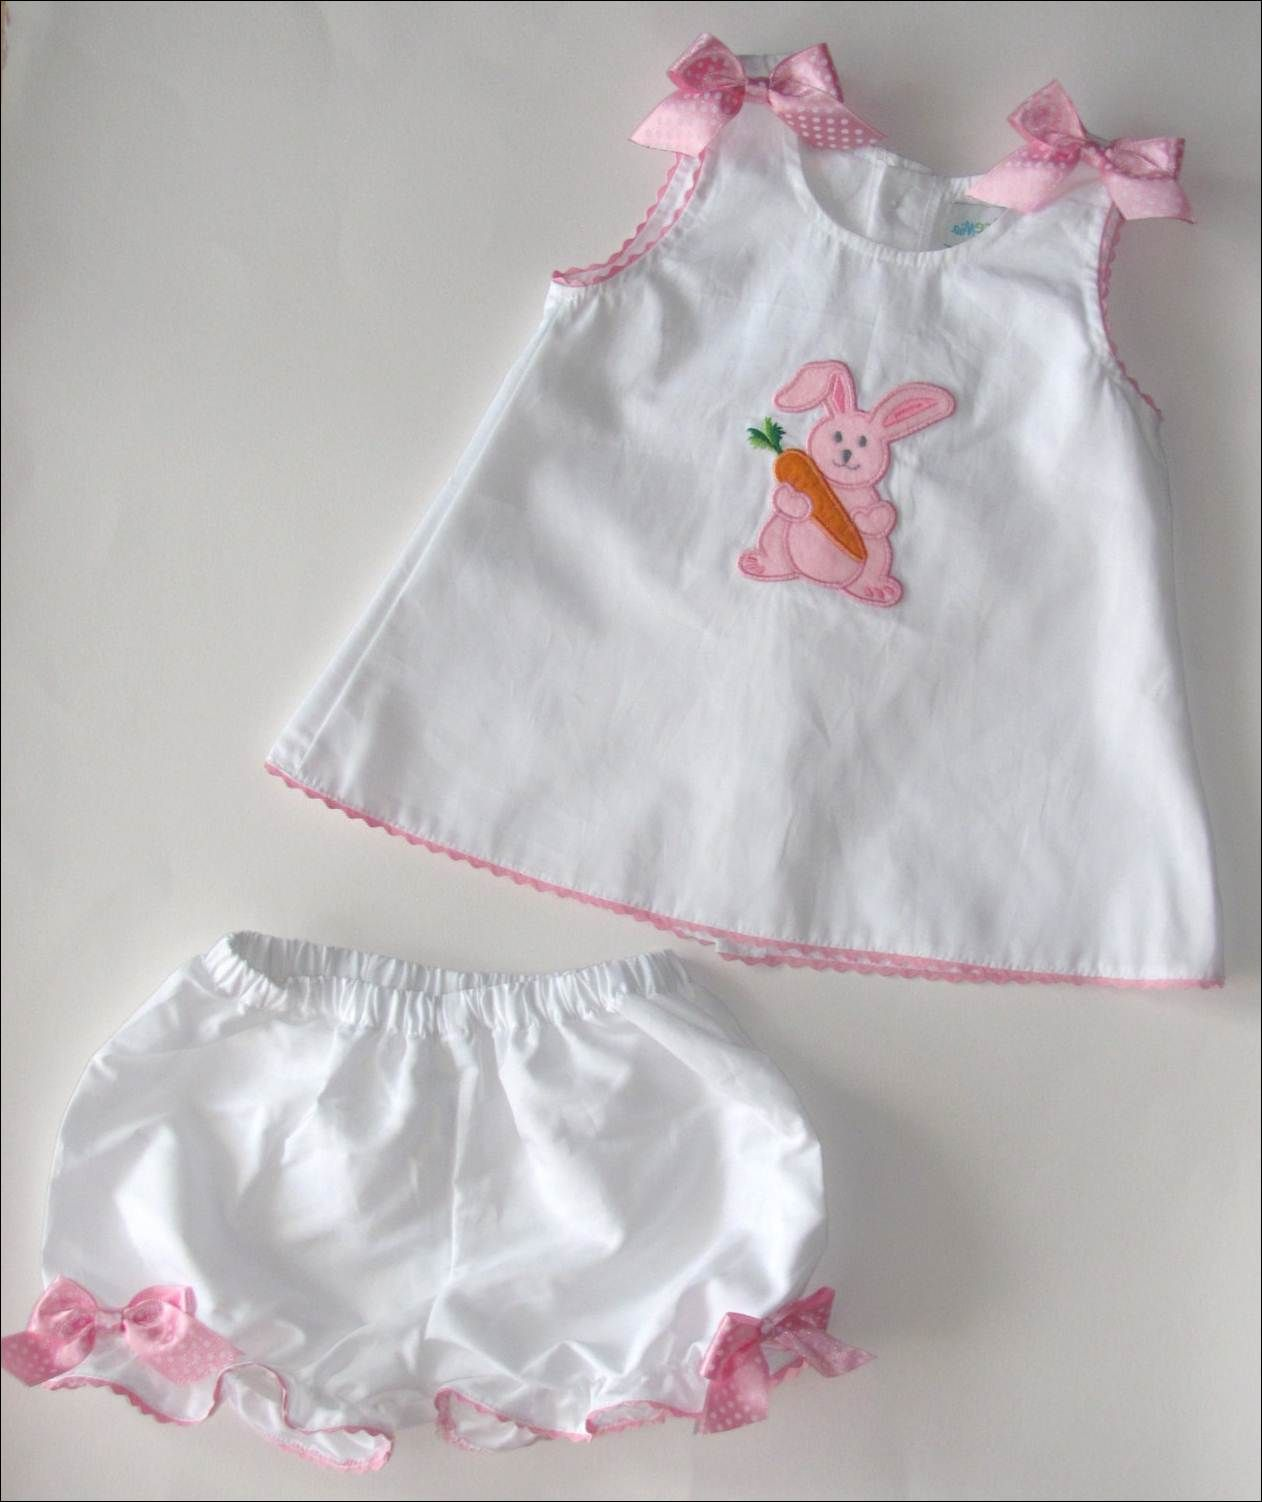 dress for baby girl singapore